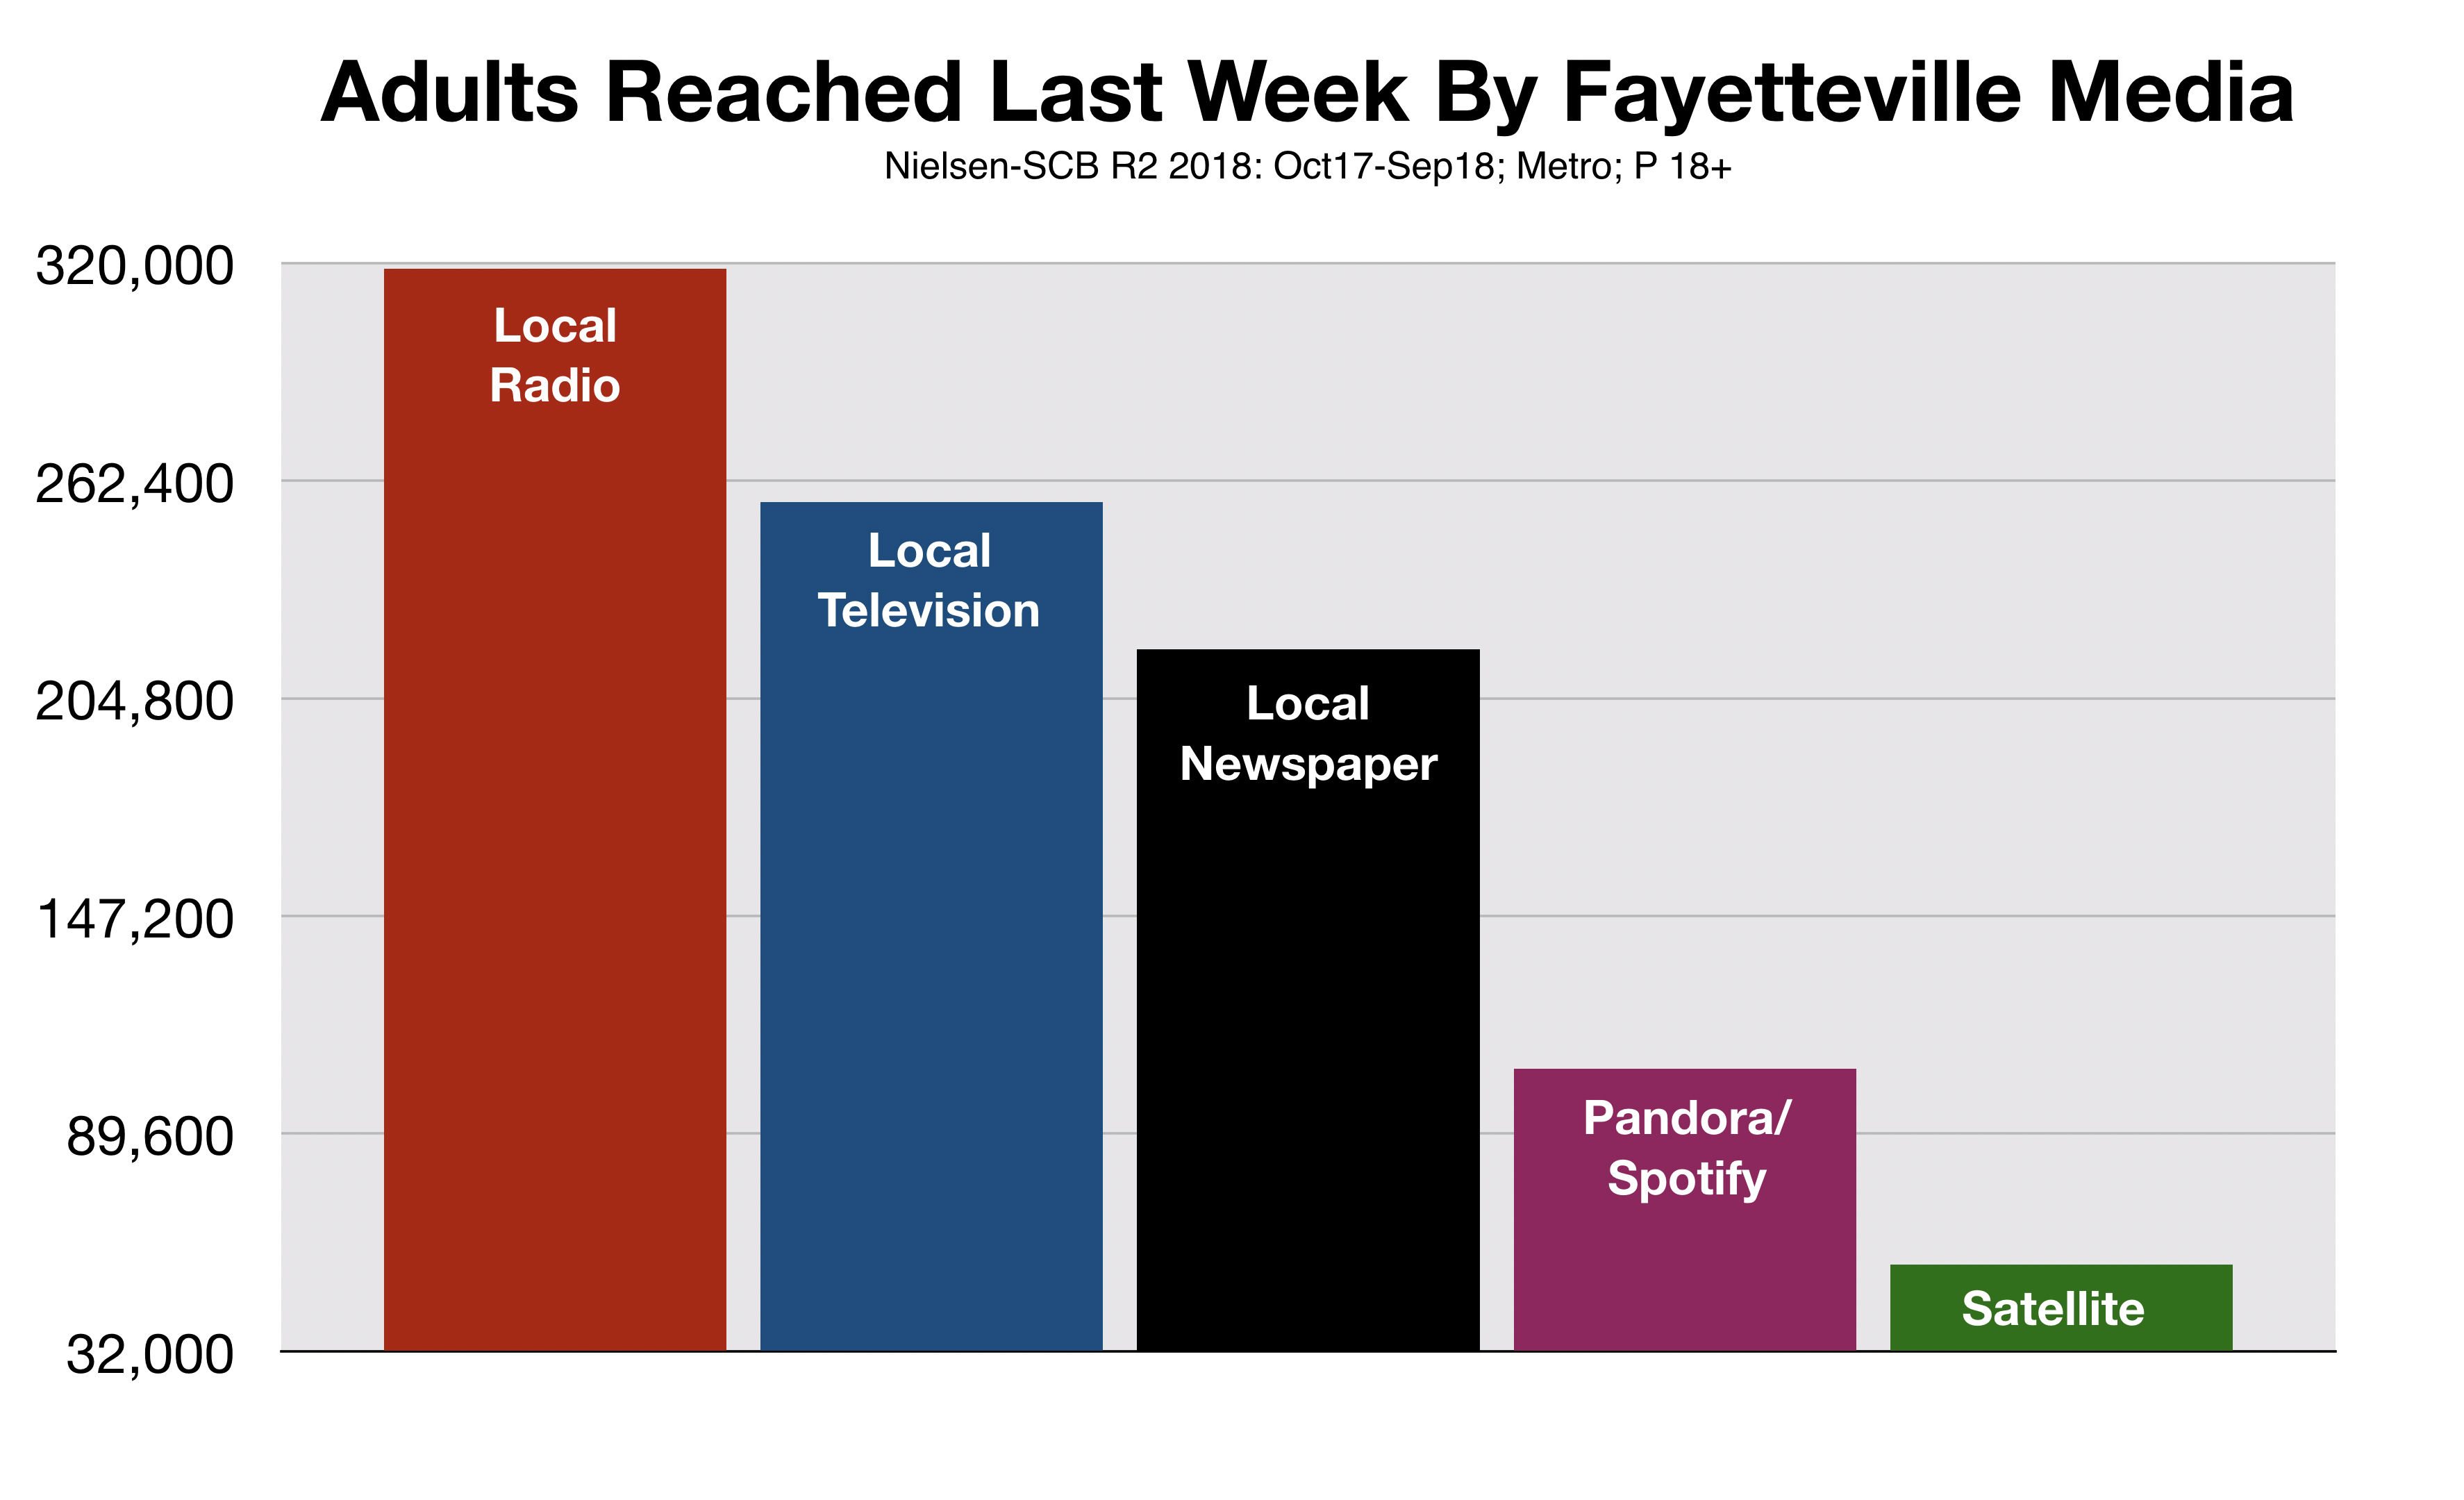 Fayetteville Media Reaching Including Sirius/XM